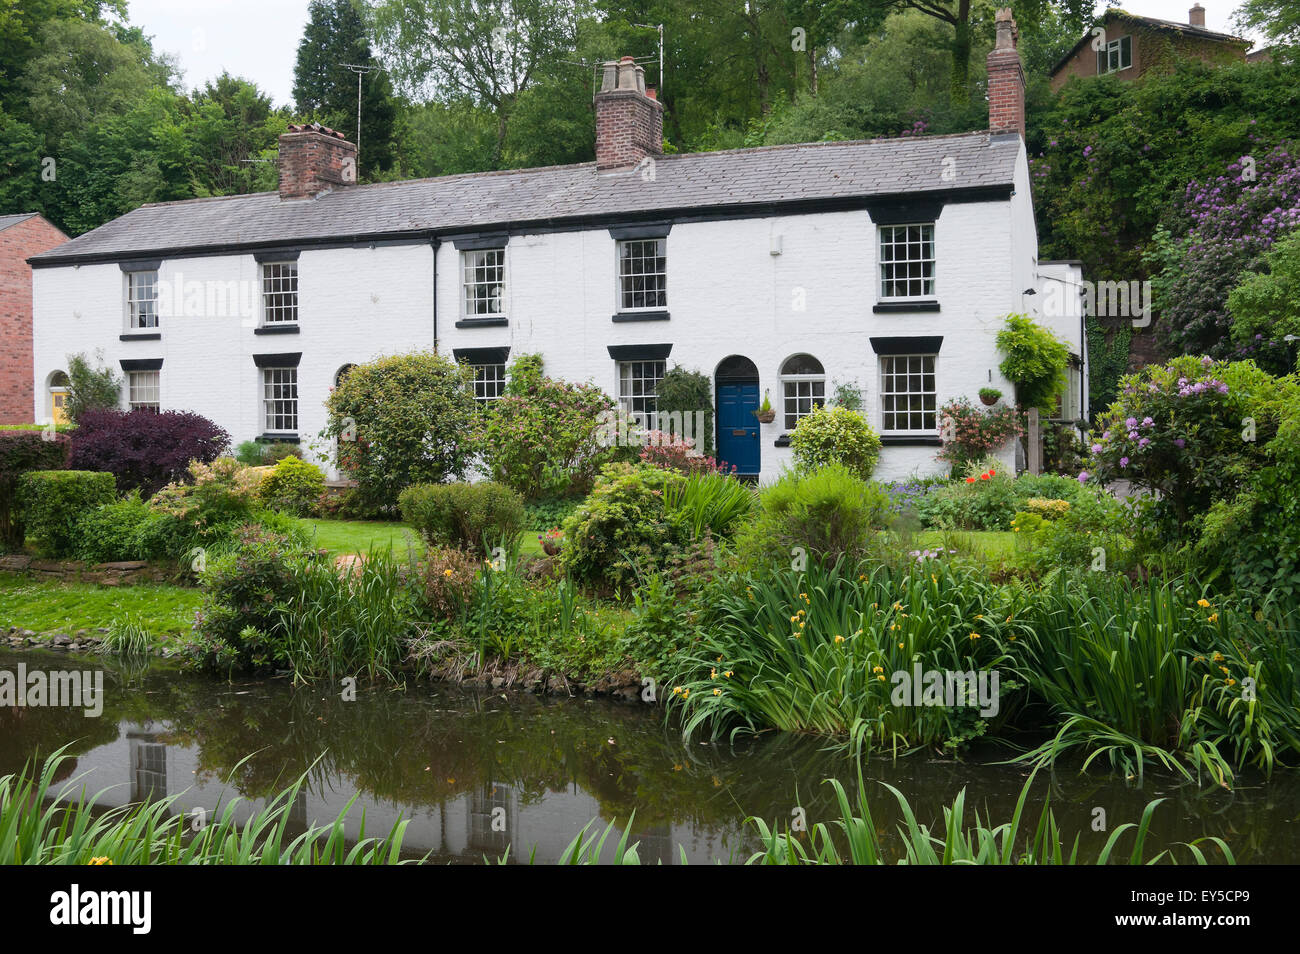 Row of White painted cottages by the pond Lymm Cheshire England - Stock Image